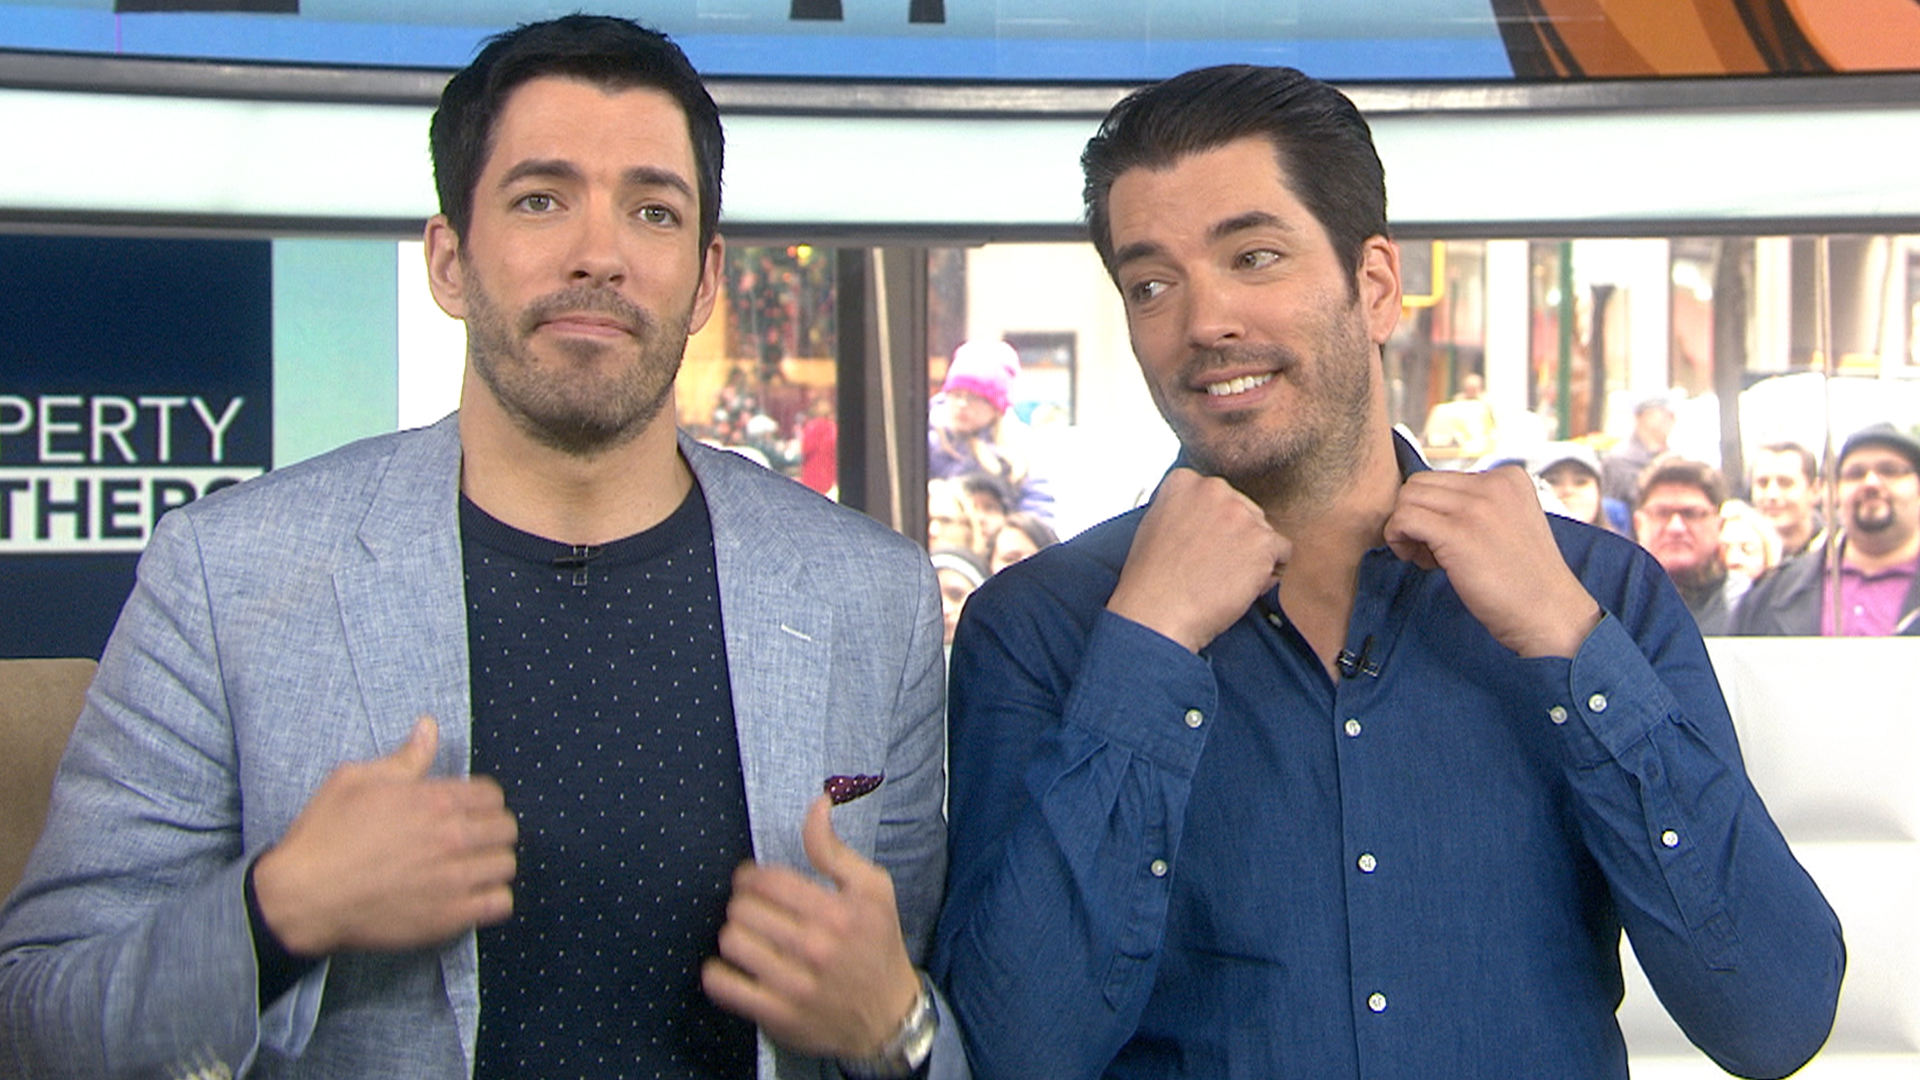 Property brothers show how to make padded headboard Who are the property brothers